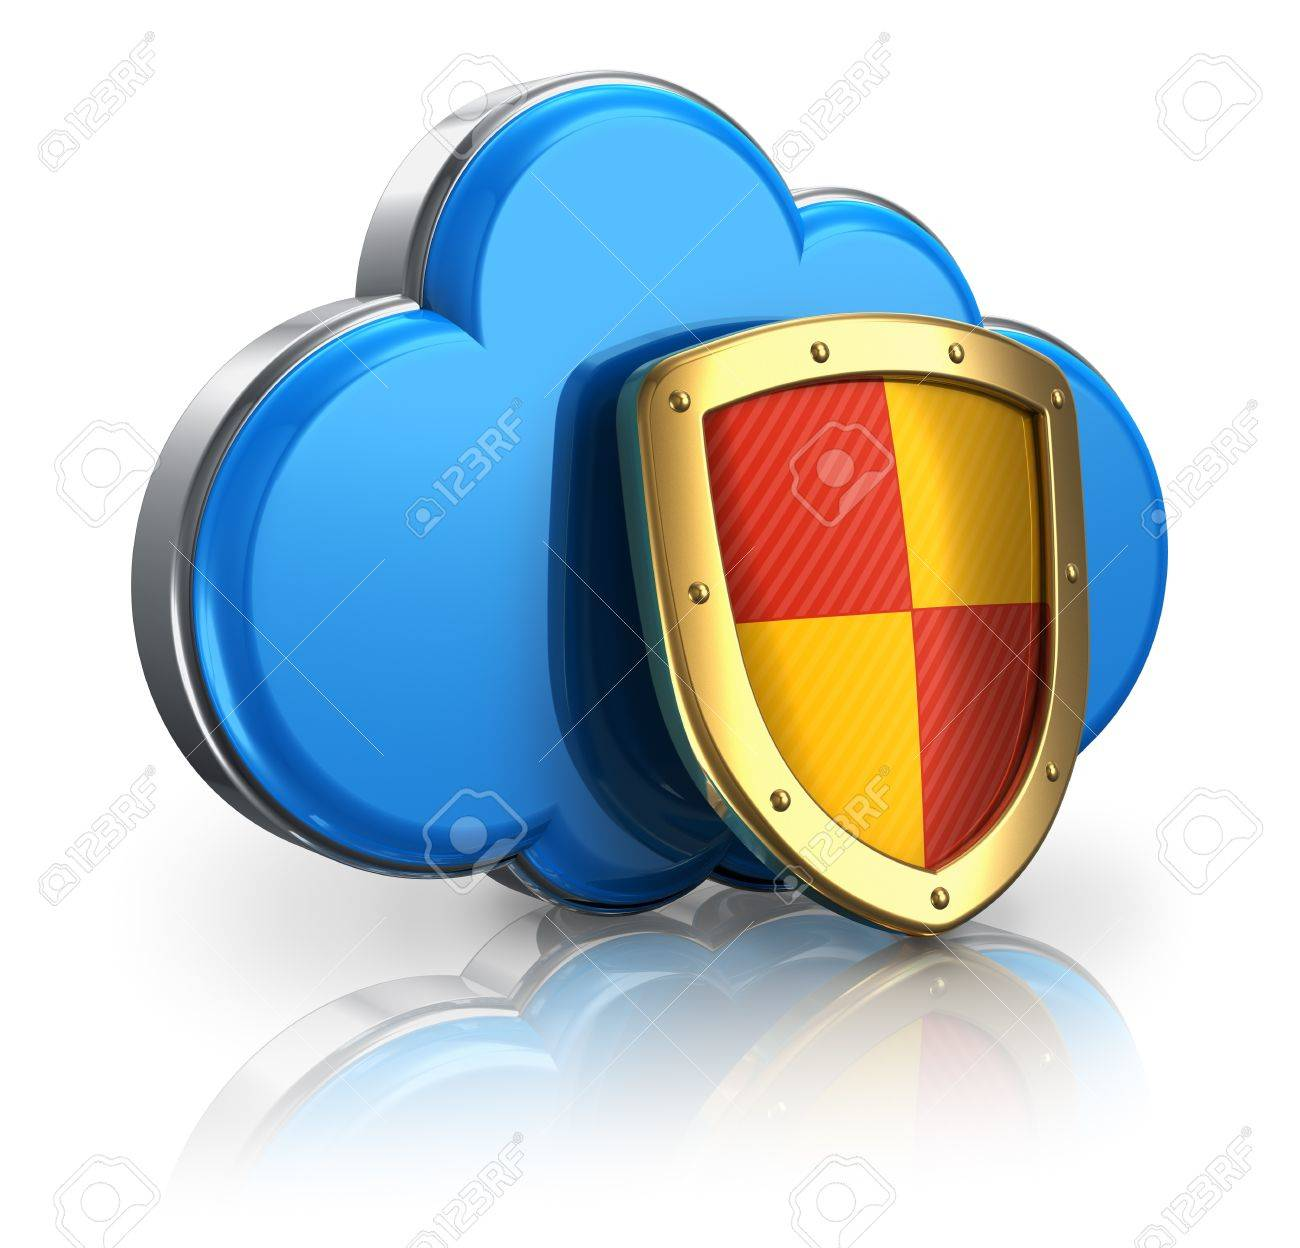 Cloud computing and storage security concept: blue glossy cloud icon covered by metal protection shield isolated on white background with reflection effect Stock Photo - 13537053